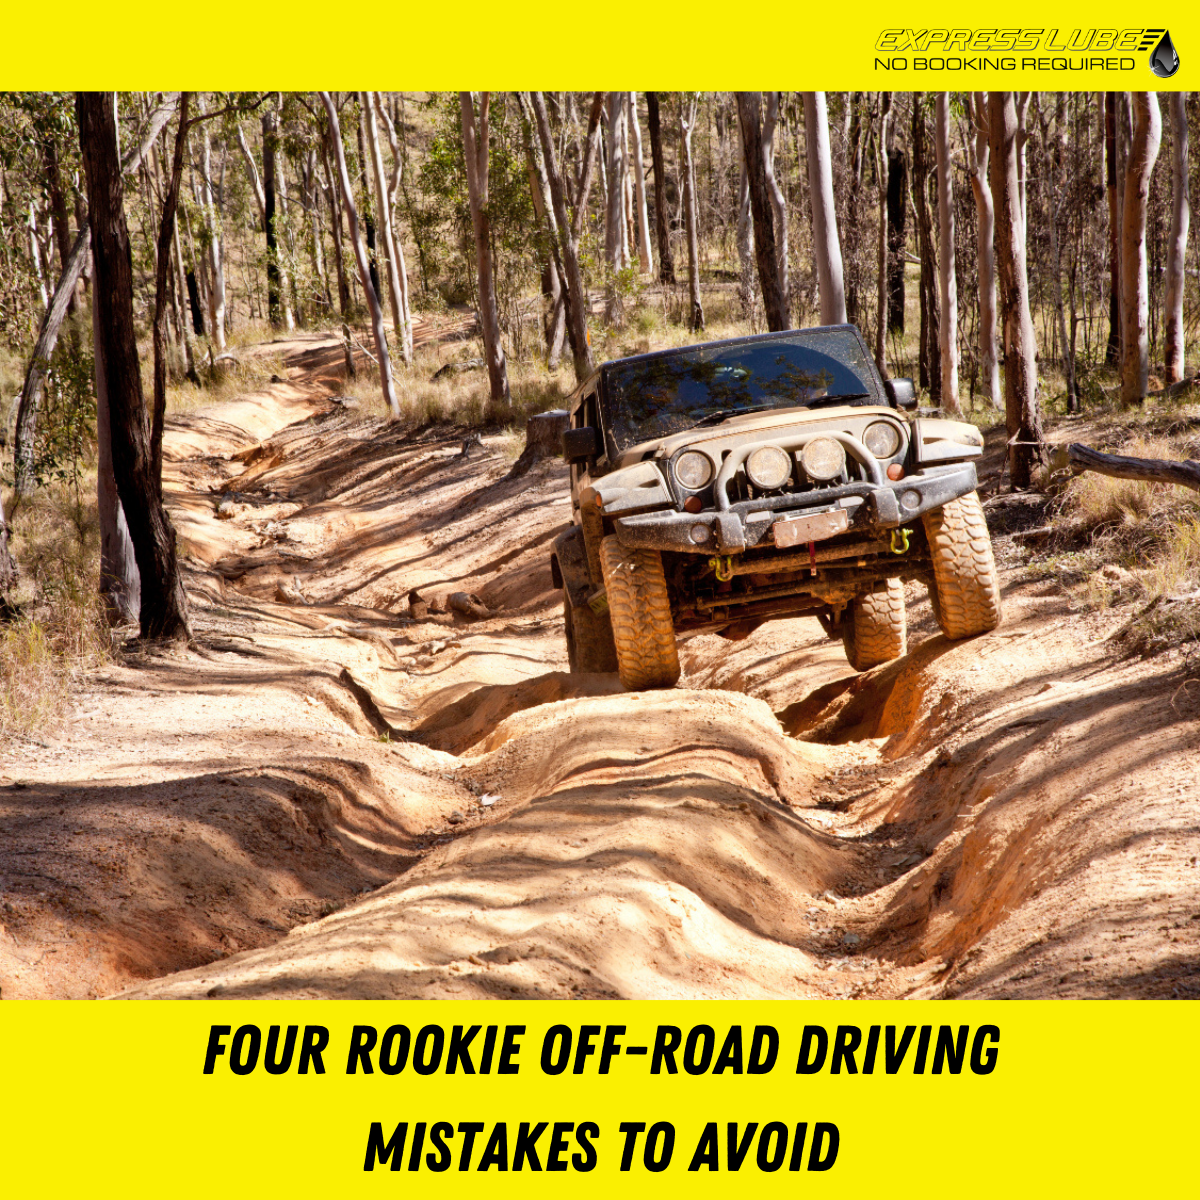 Express Lube - Rookie off road driving mistakes to avoid